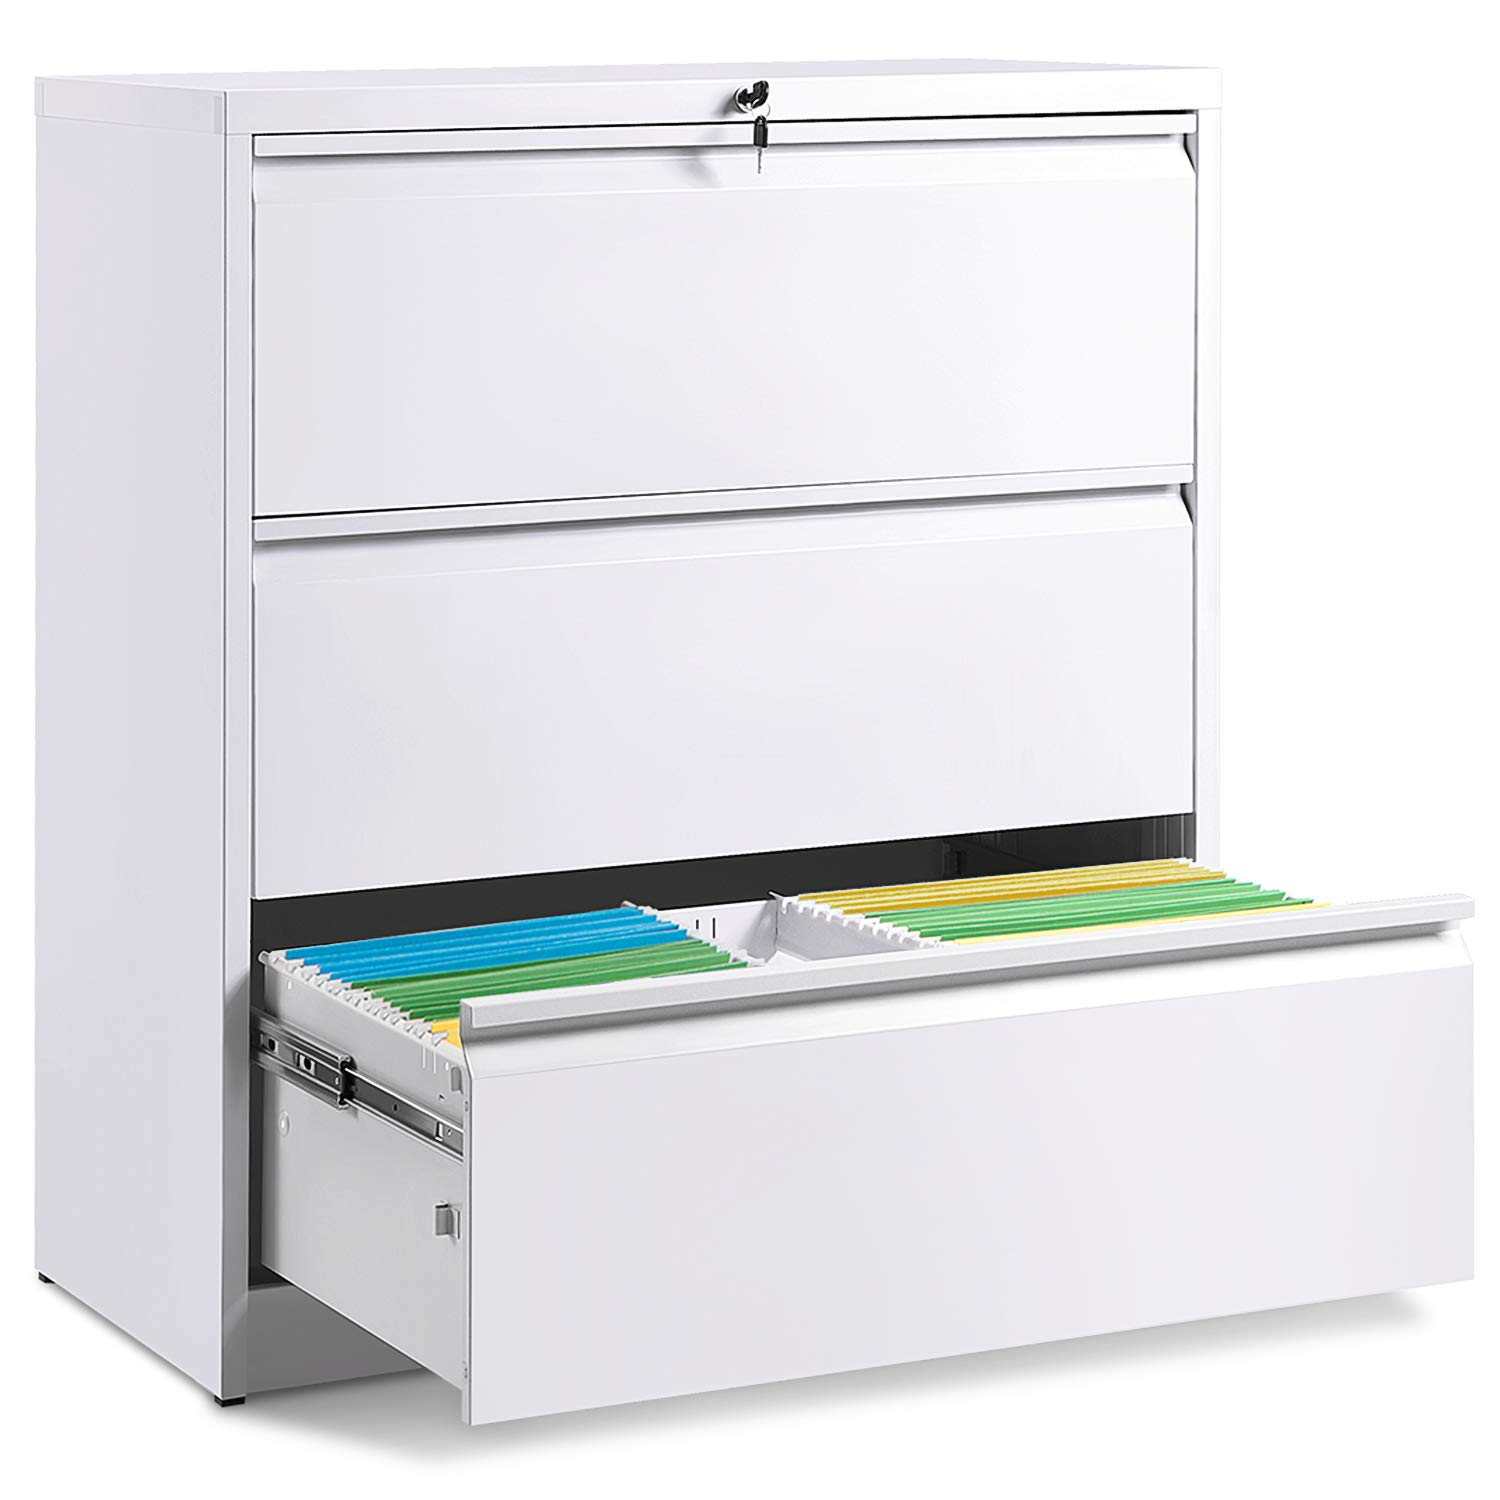 3 Drawers White Lateral File Cabinet with Lock, Lockable Heavy Duty Filing Cabinet, Steel Construction by Modern Luxe